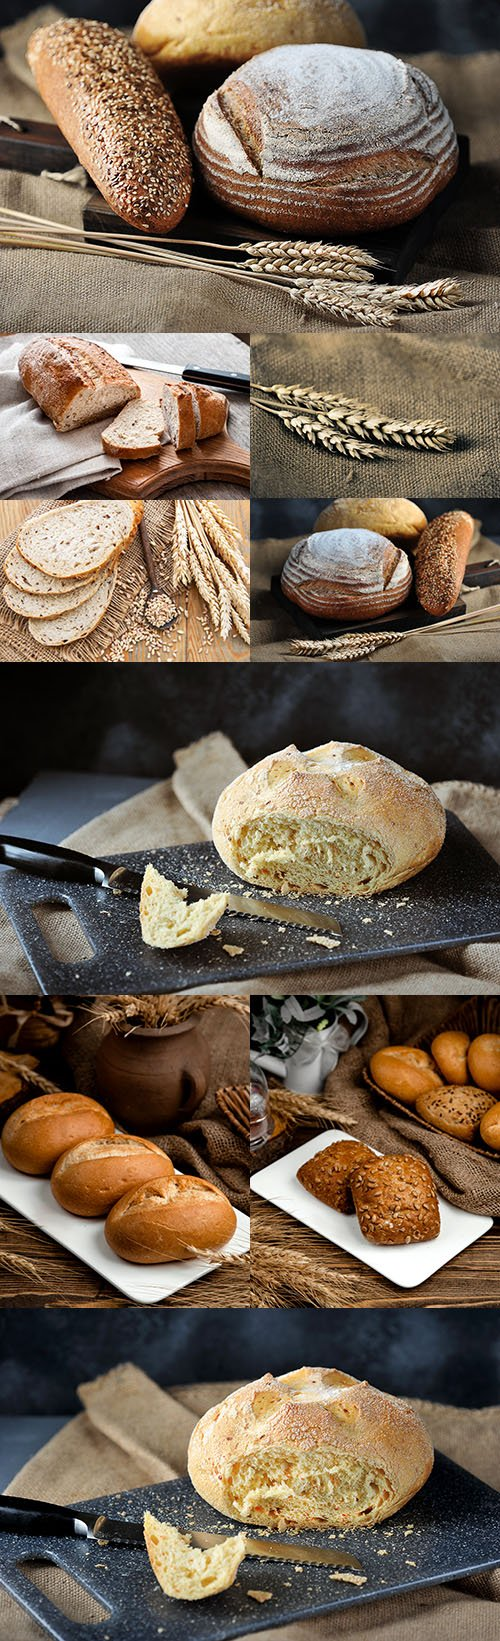 Loaf of fresh and flavoured bread and wheat flakes